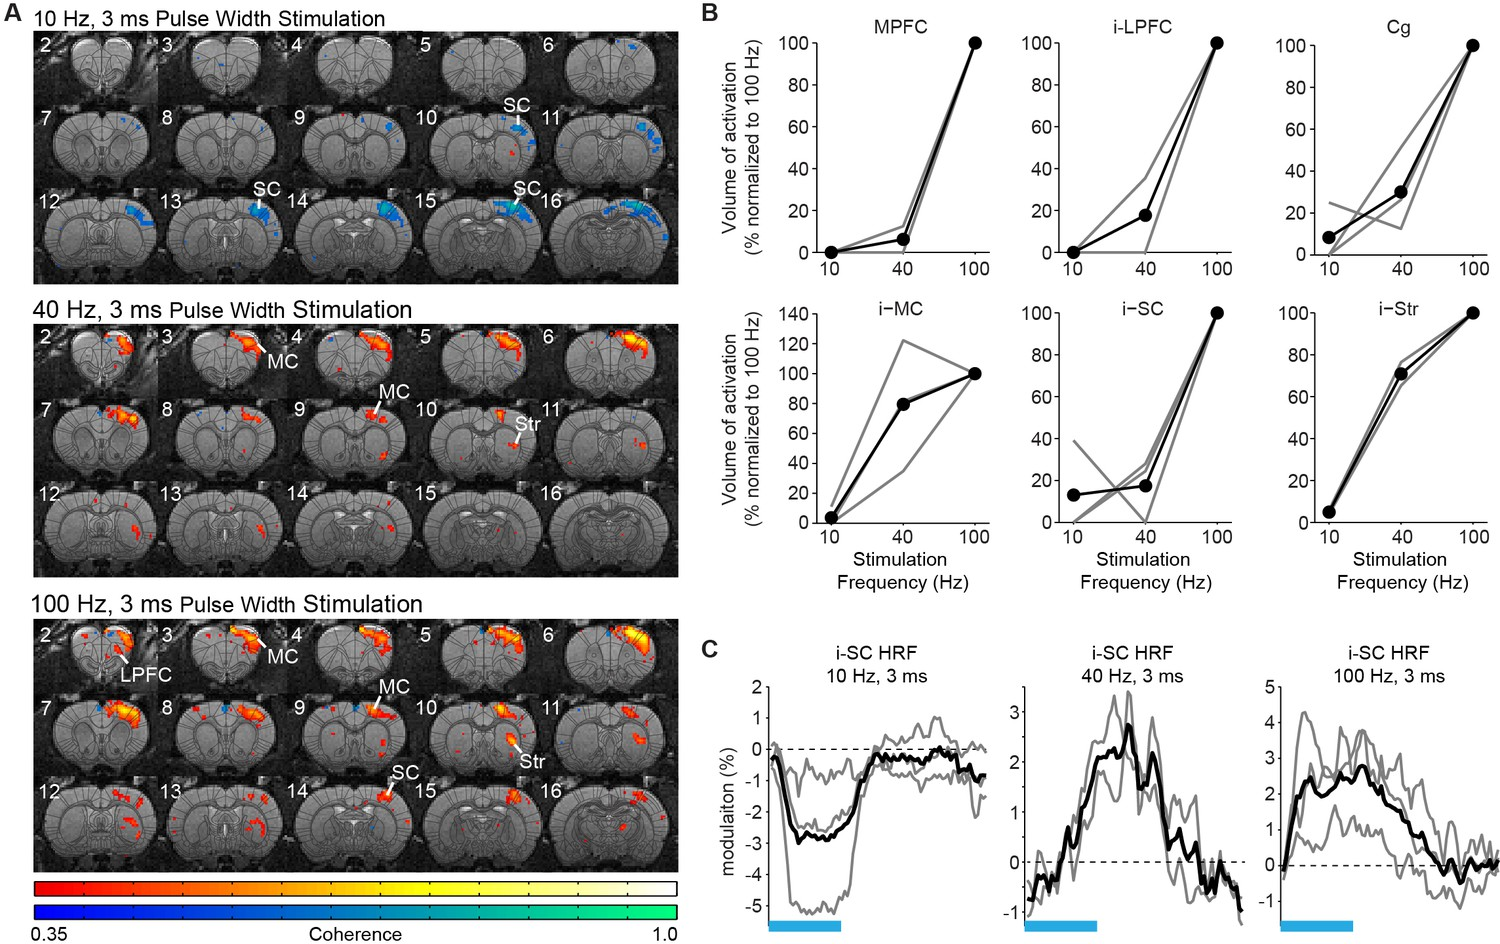 Frequency Selective Control Of Cortical And Subcortical Networks By Chicken Wing Diagram Jim Ekstrom The Dependent Recruitment Forebrain Central Thalamus Its Over Bold Signal Polarity Are Preserved When Pulse Width Is